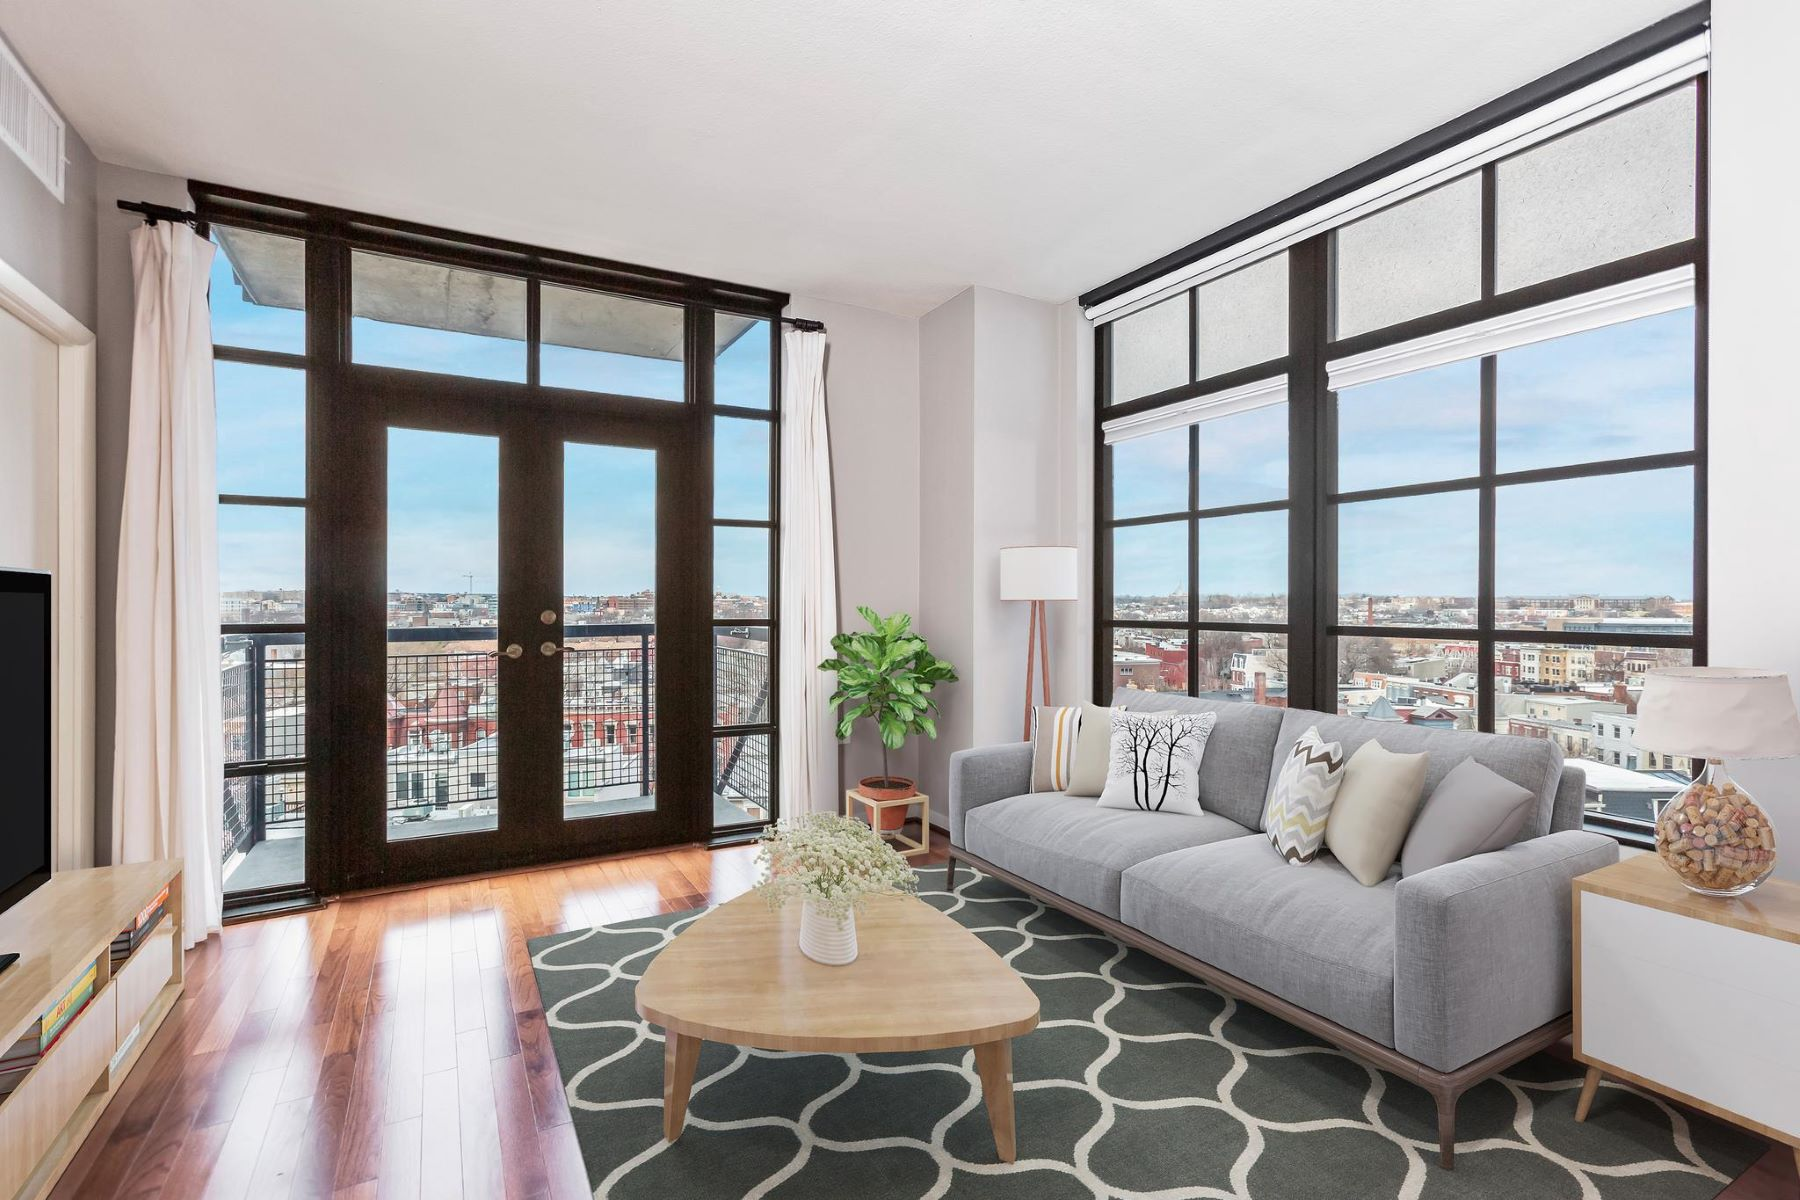 Condominium for Sale at 437 New York Ave NW #1001 437 New York Ave NW #1001 Washington, District Of Columbia 20001 United States